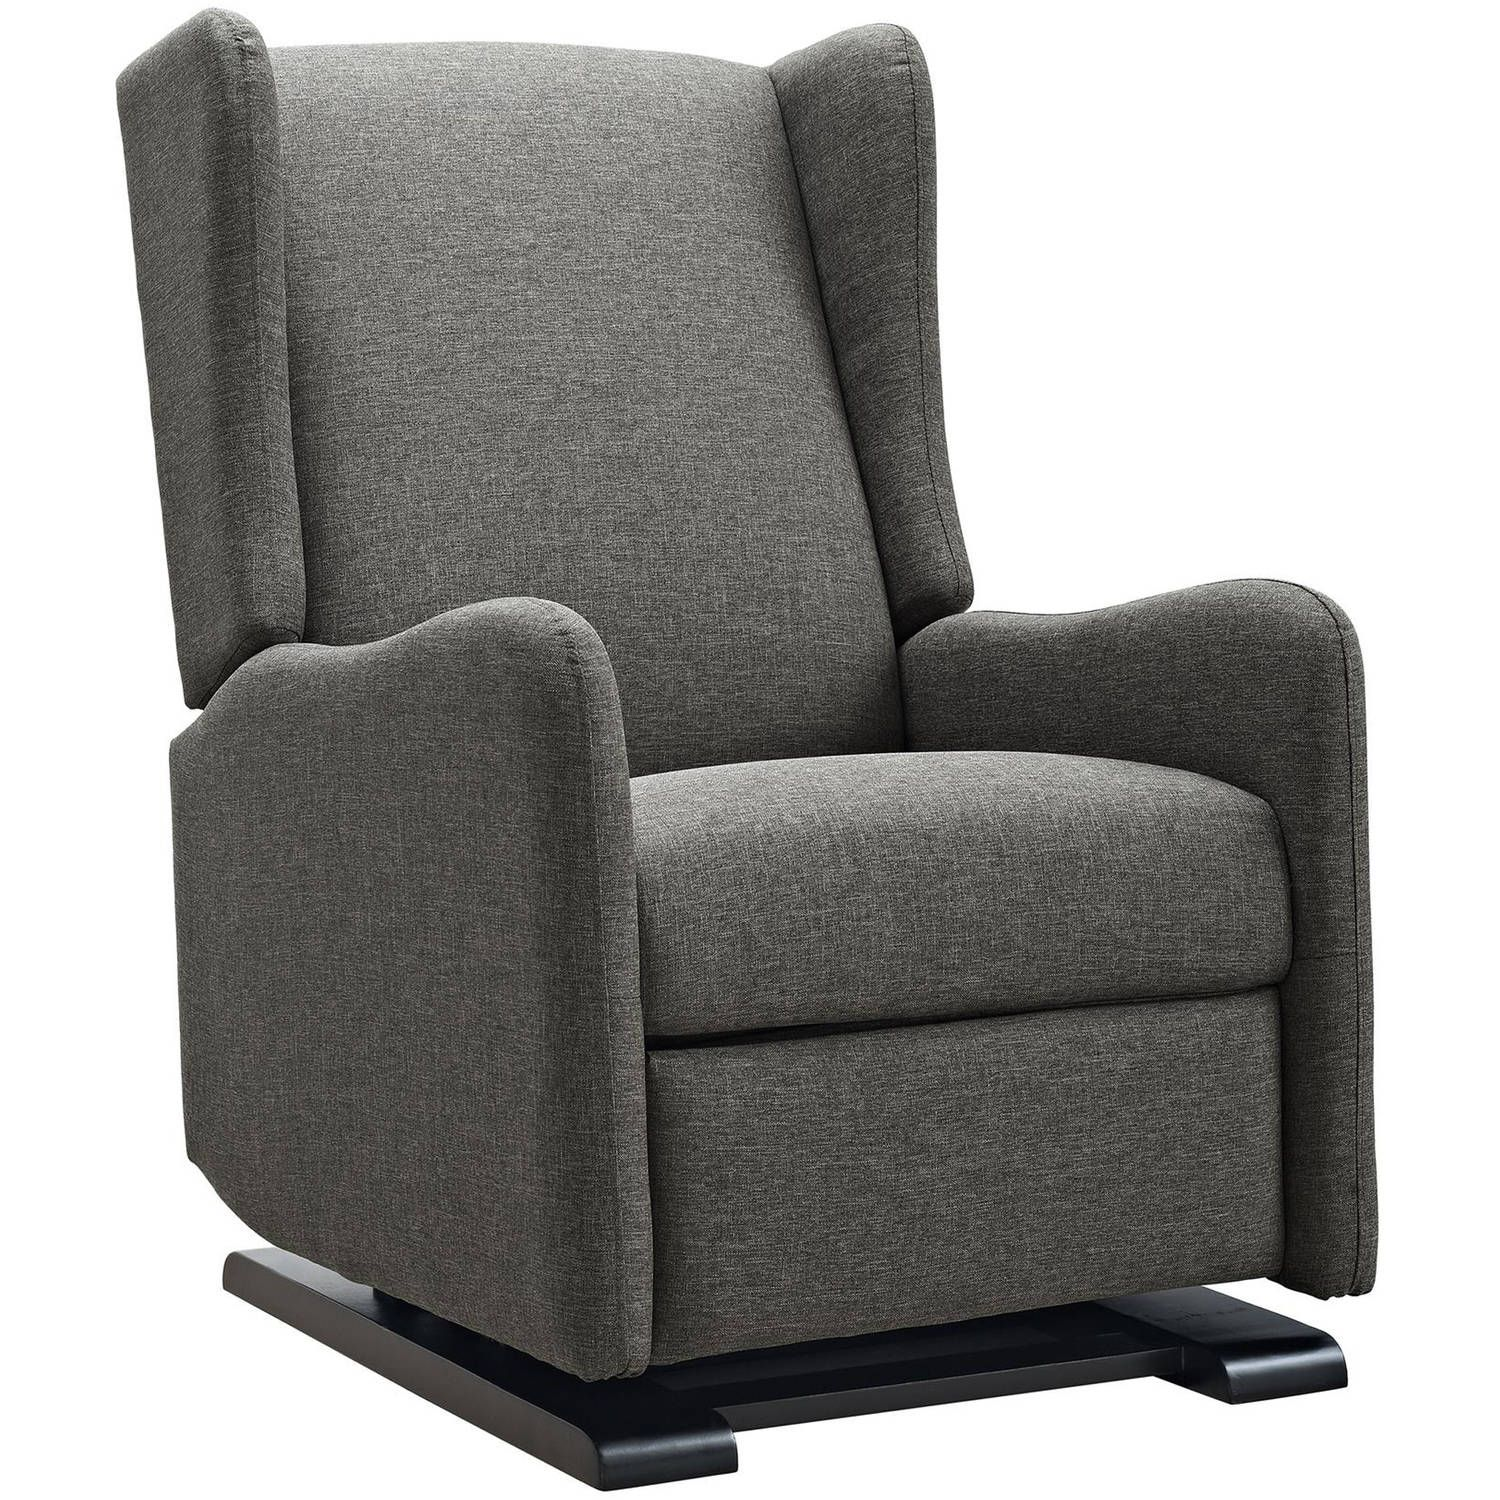 Baby Rocker recliners, Accent chairs for sale, Chair and